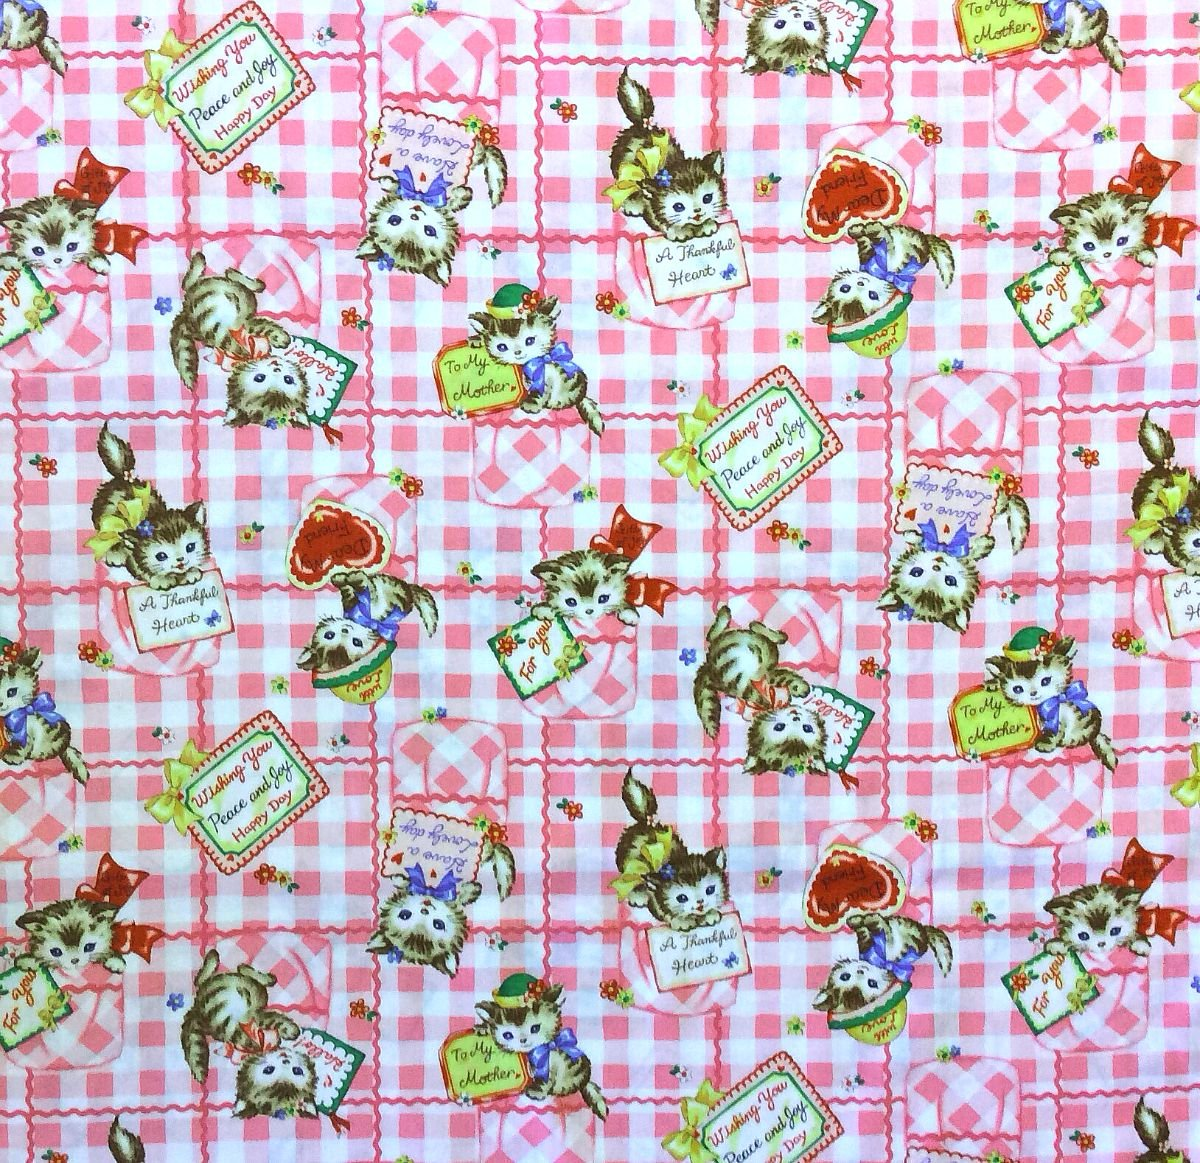 Cat Lover Cute Kitten Love Friendship Hearts Floral Quilting Cotton Fabric NT16